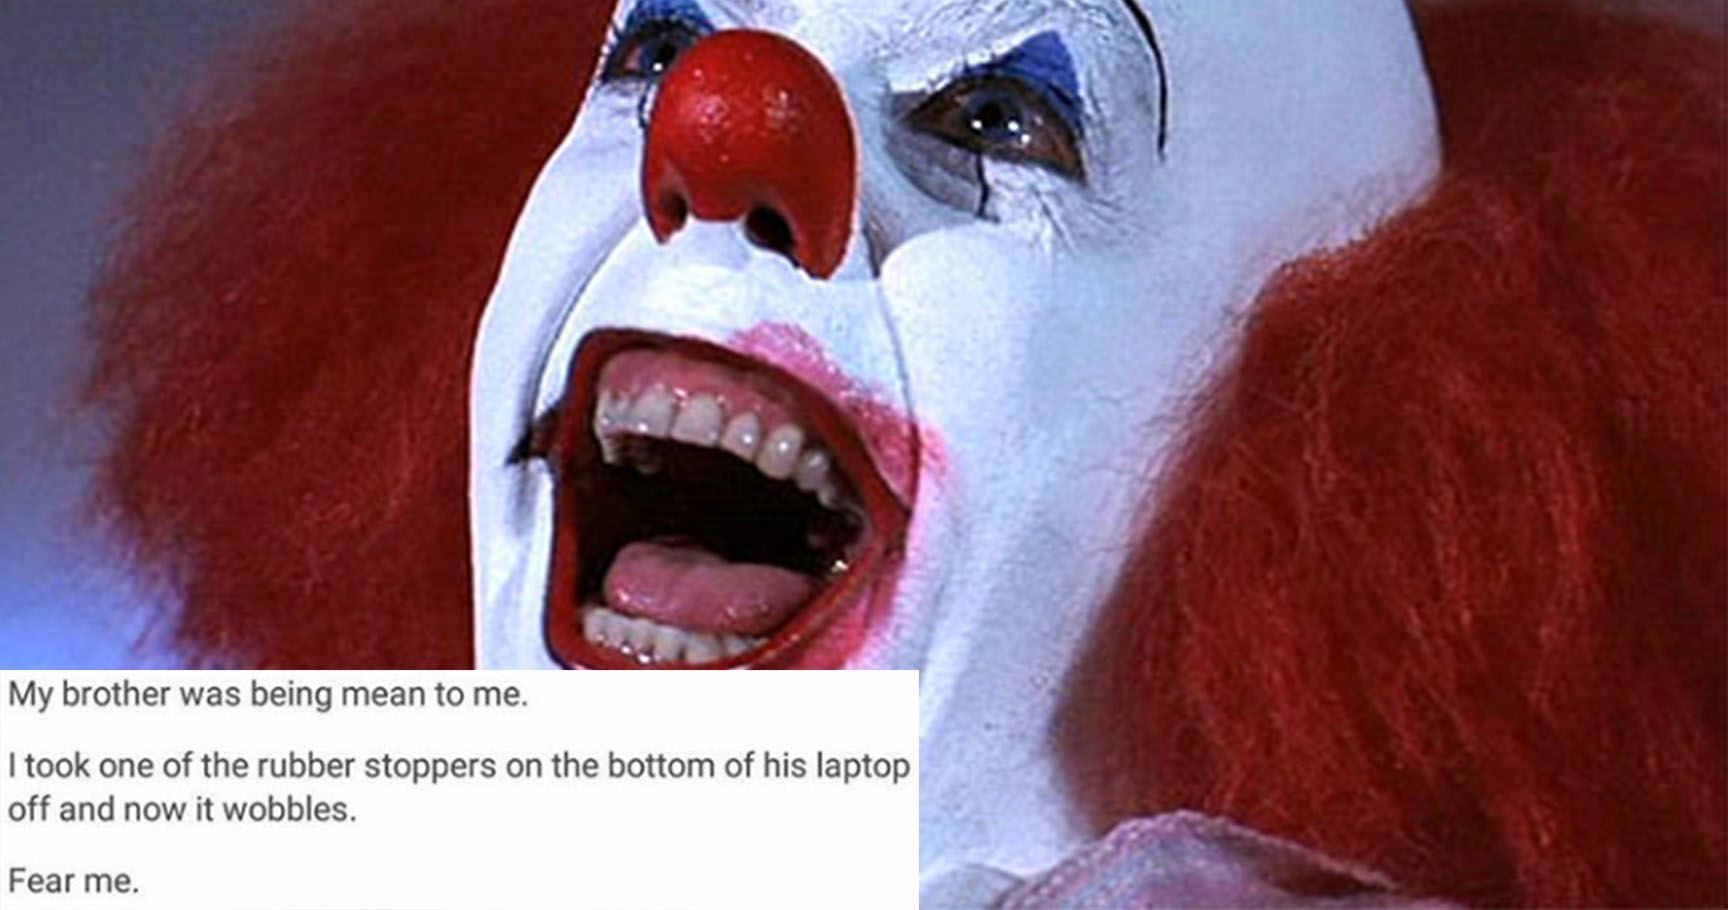 15 Of The Most Satisfying Revenge Stories To Ever Grace The Internet